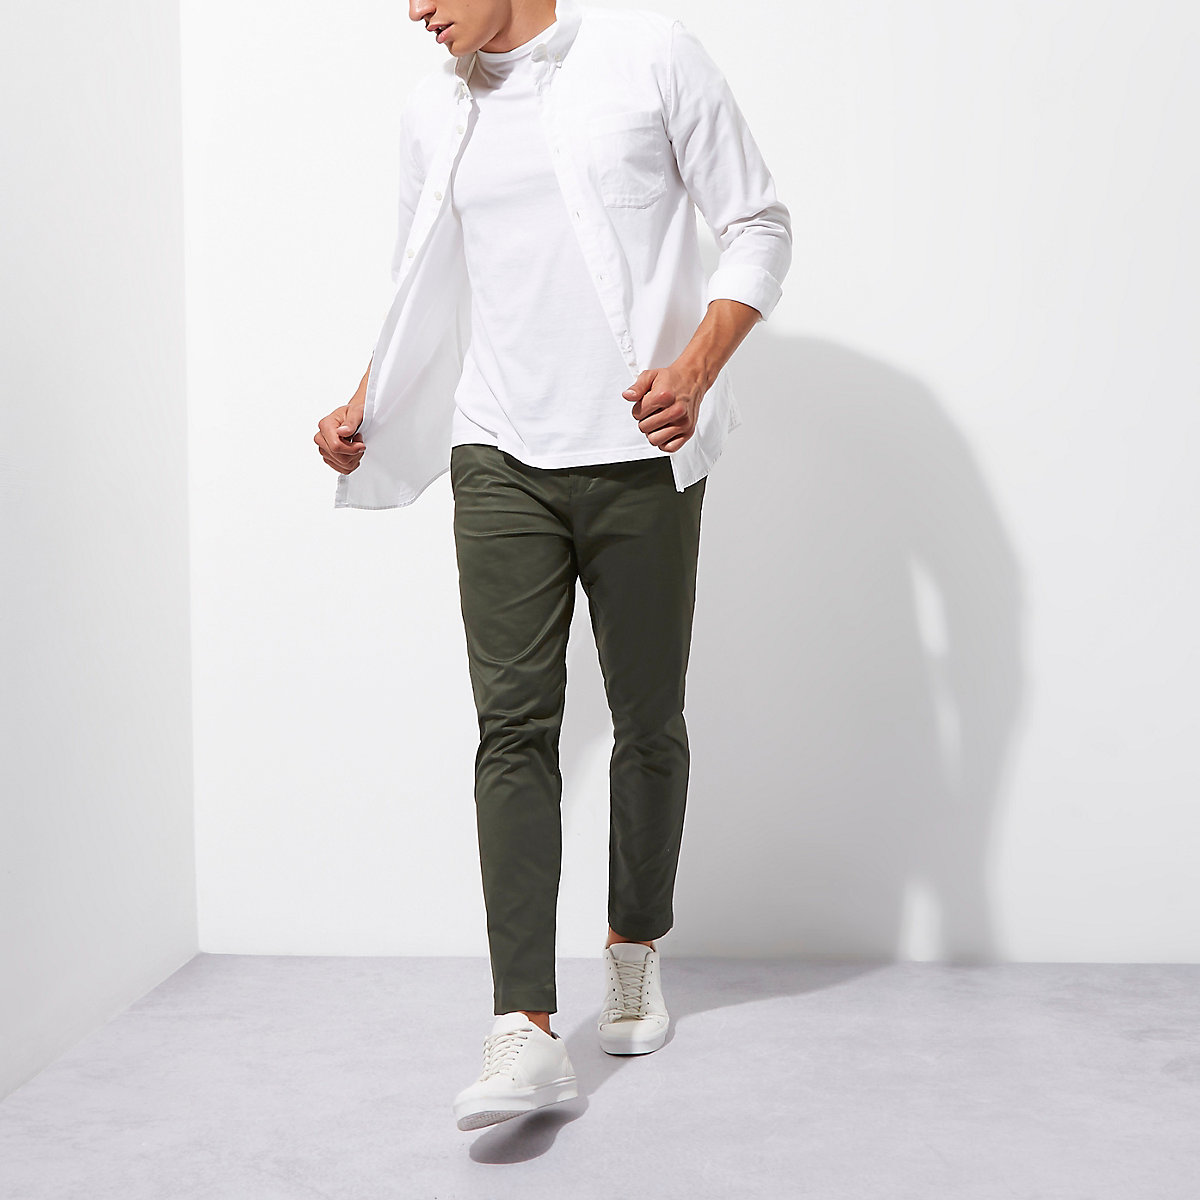 Green slim fit ankle grazer chino trousers